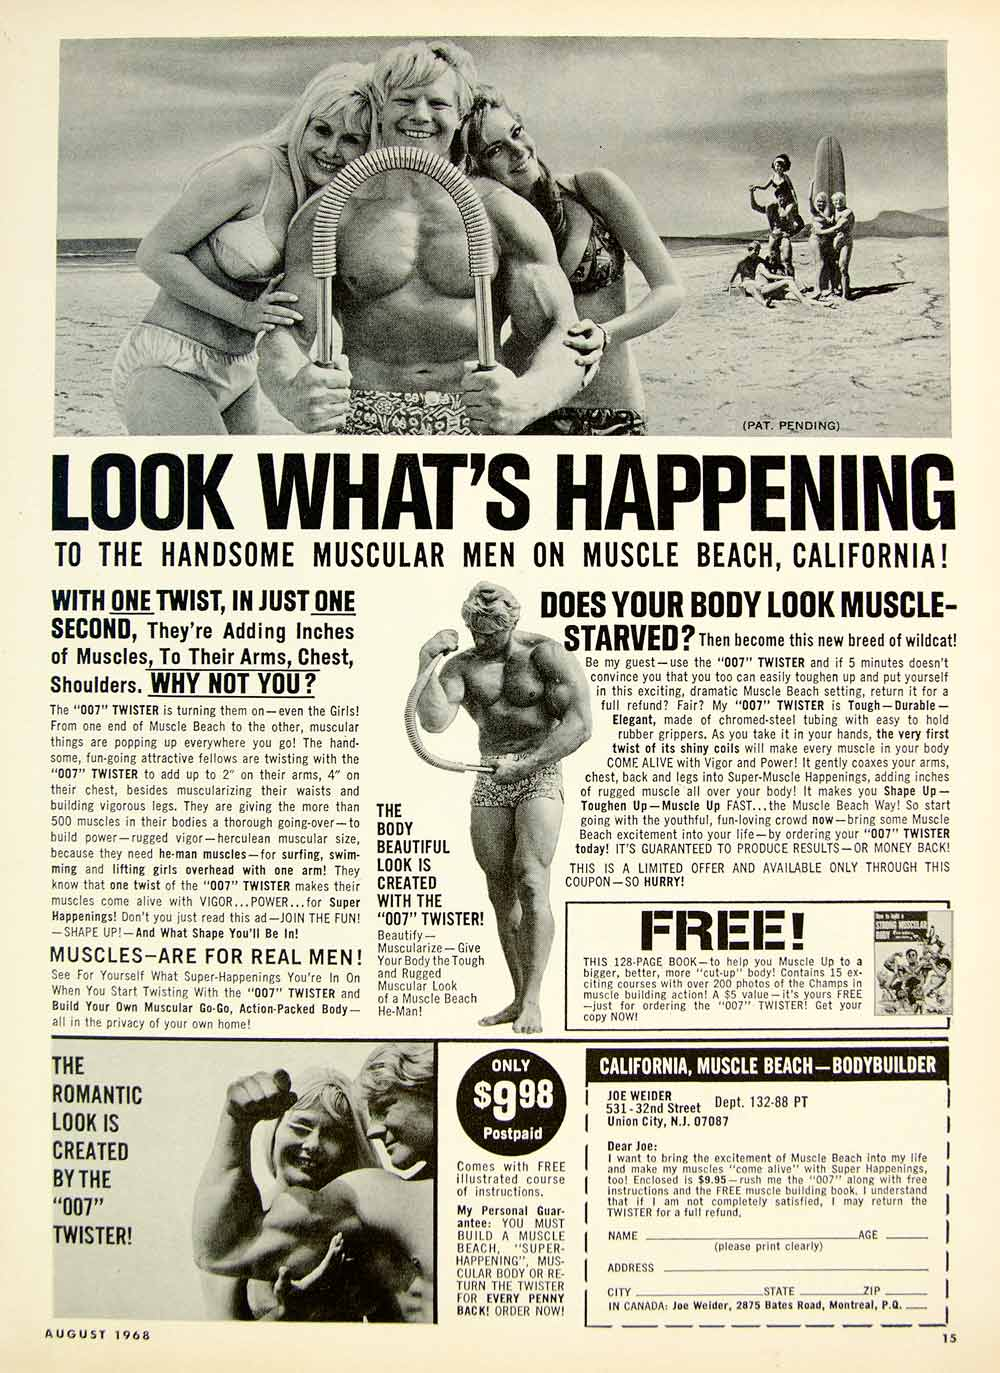 8aff9c490b 1968 Ad Vintage Joe Weider Bodybuilder 007 Twister Muscle Beach CA Fit -  Period Paper